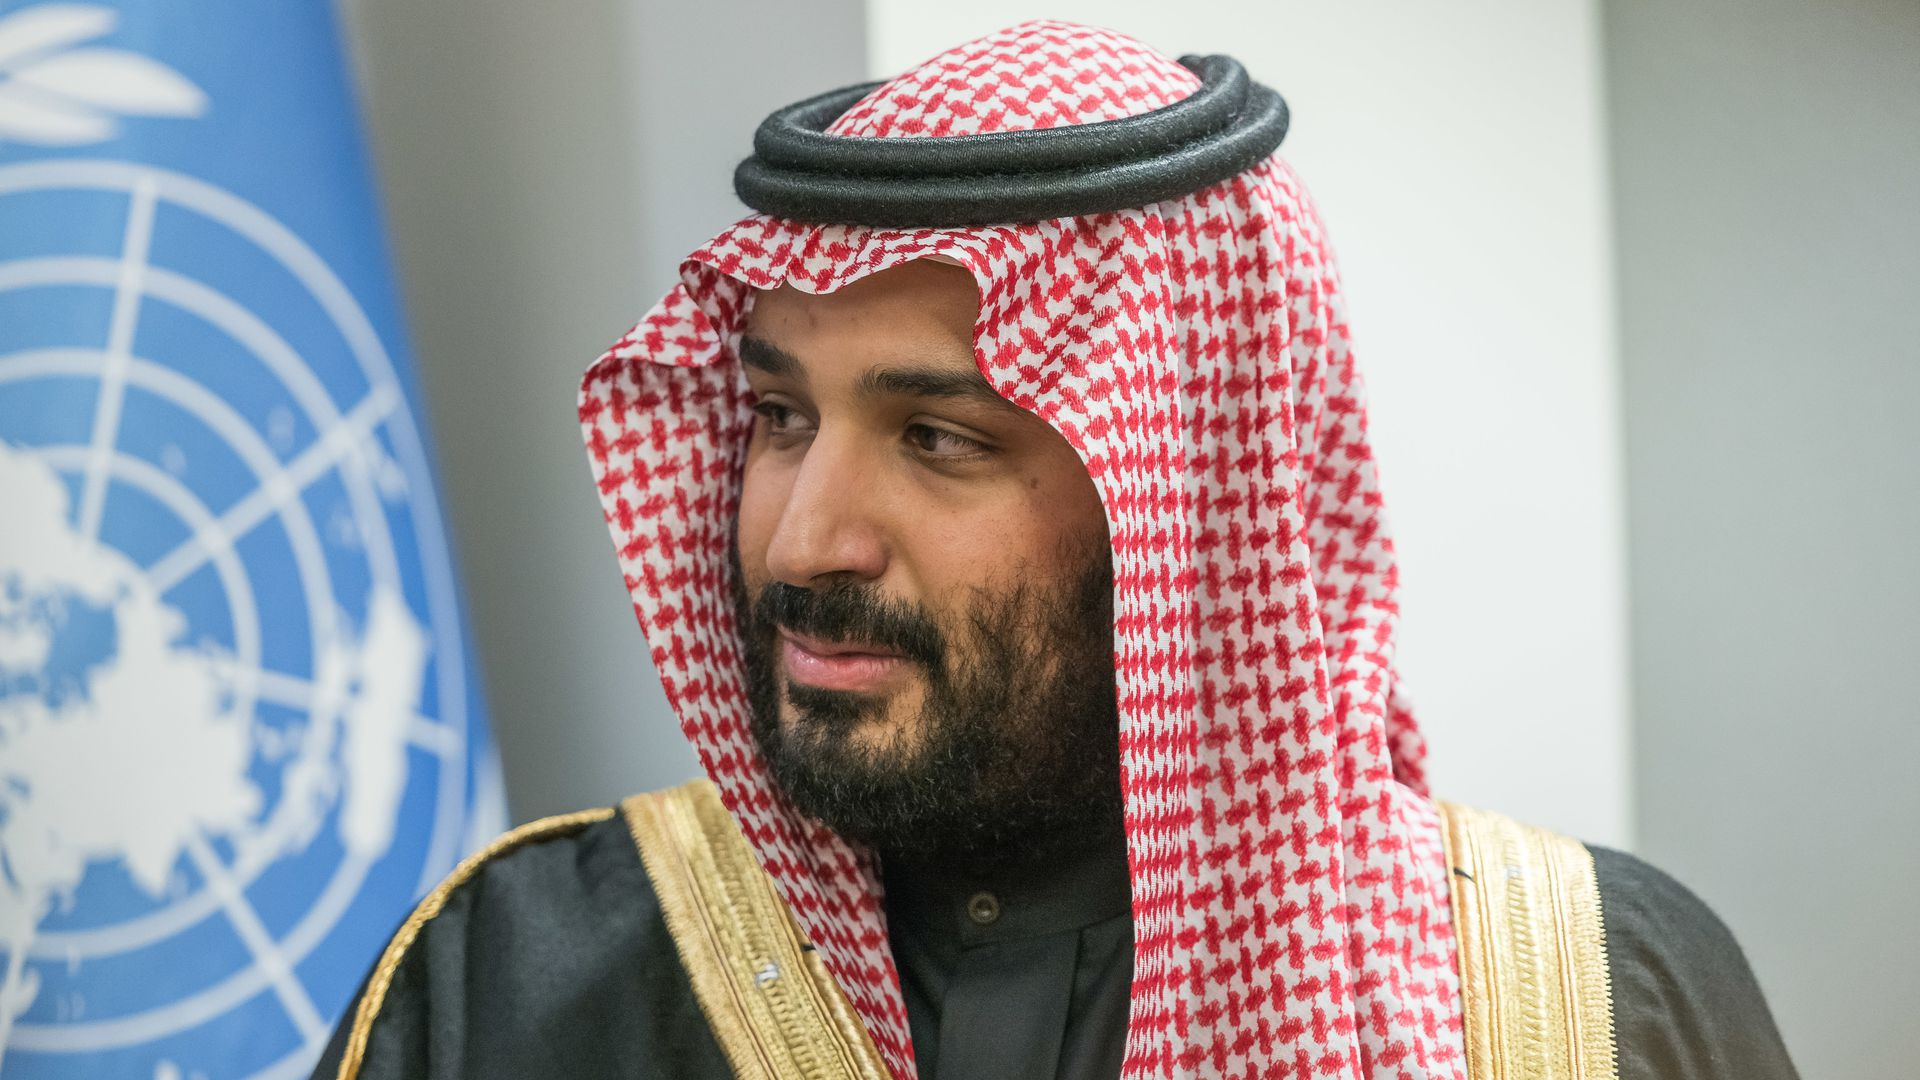 Mohammed bin Salman at the UN